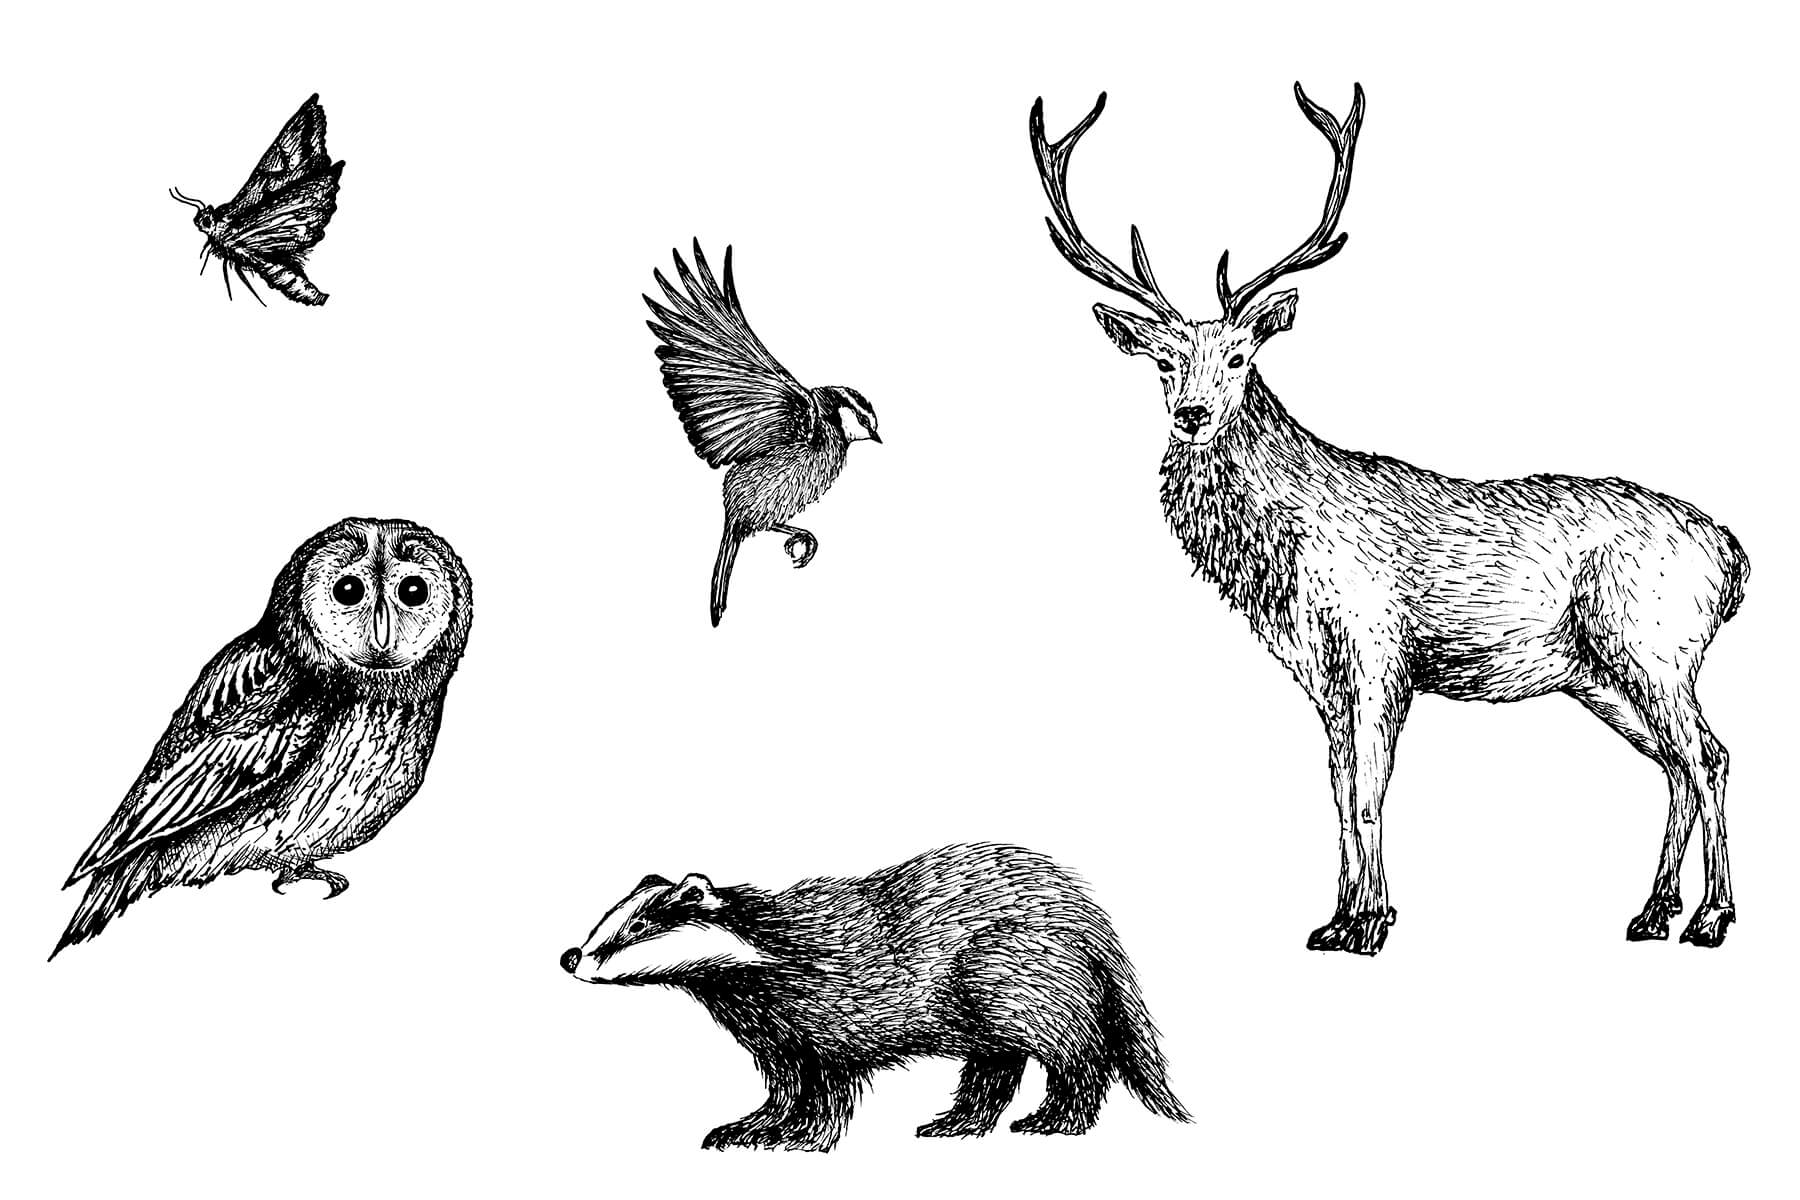 Wytham Woods Illustrations